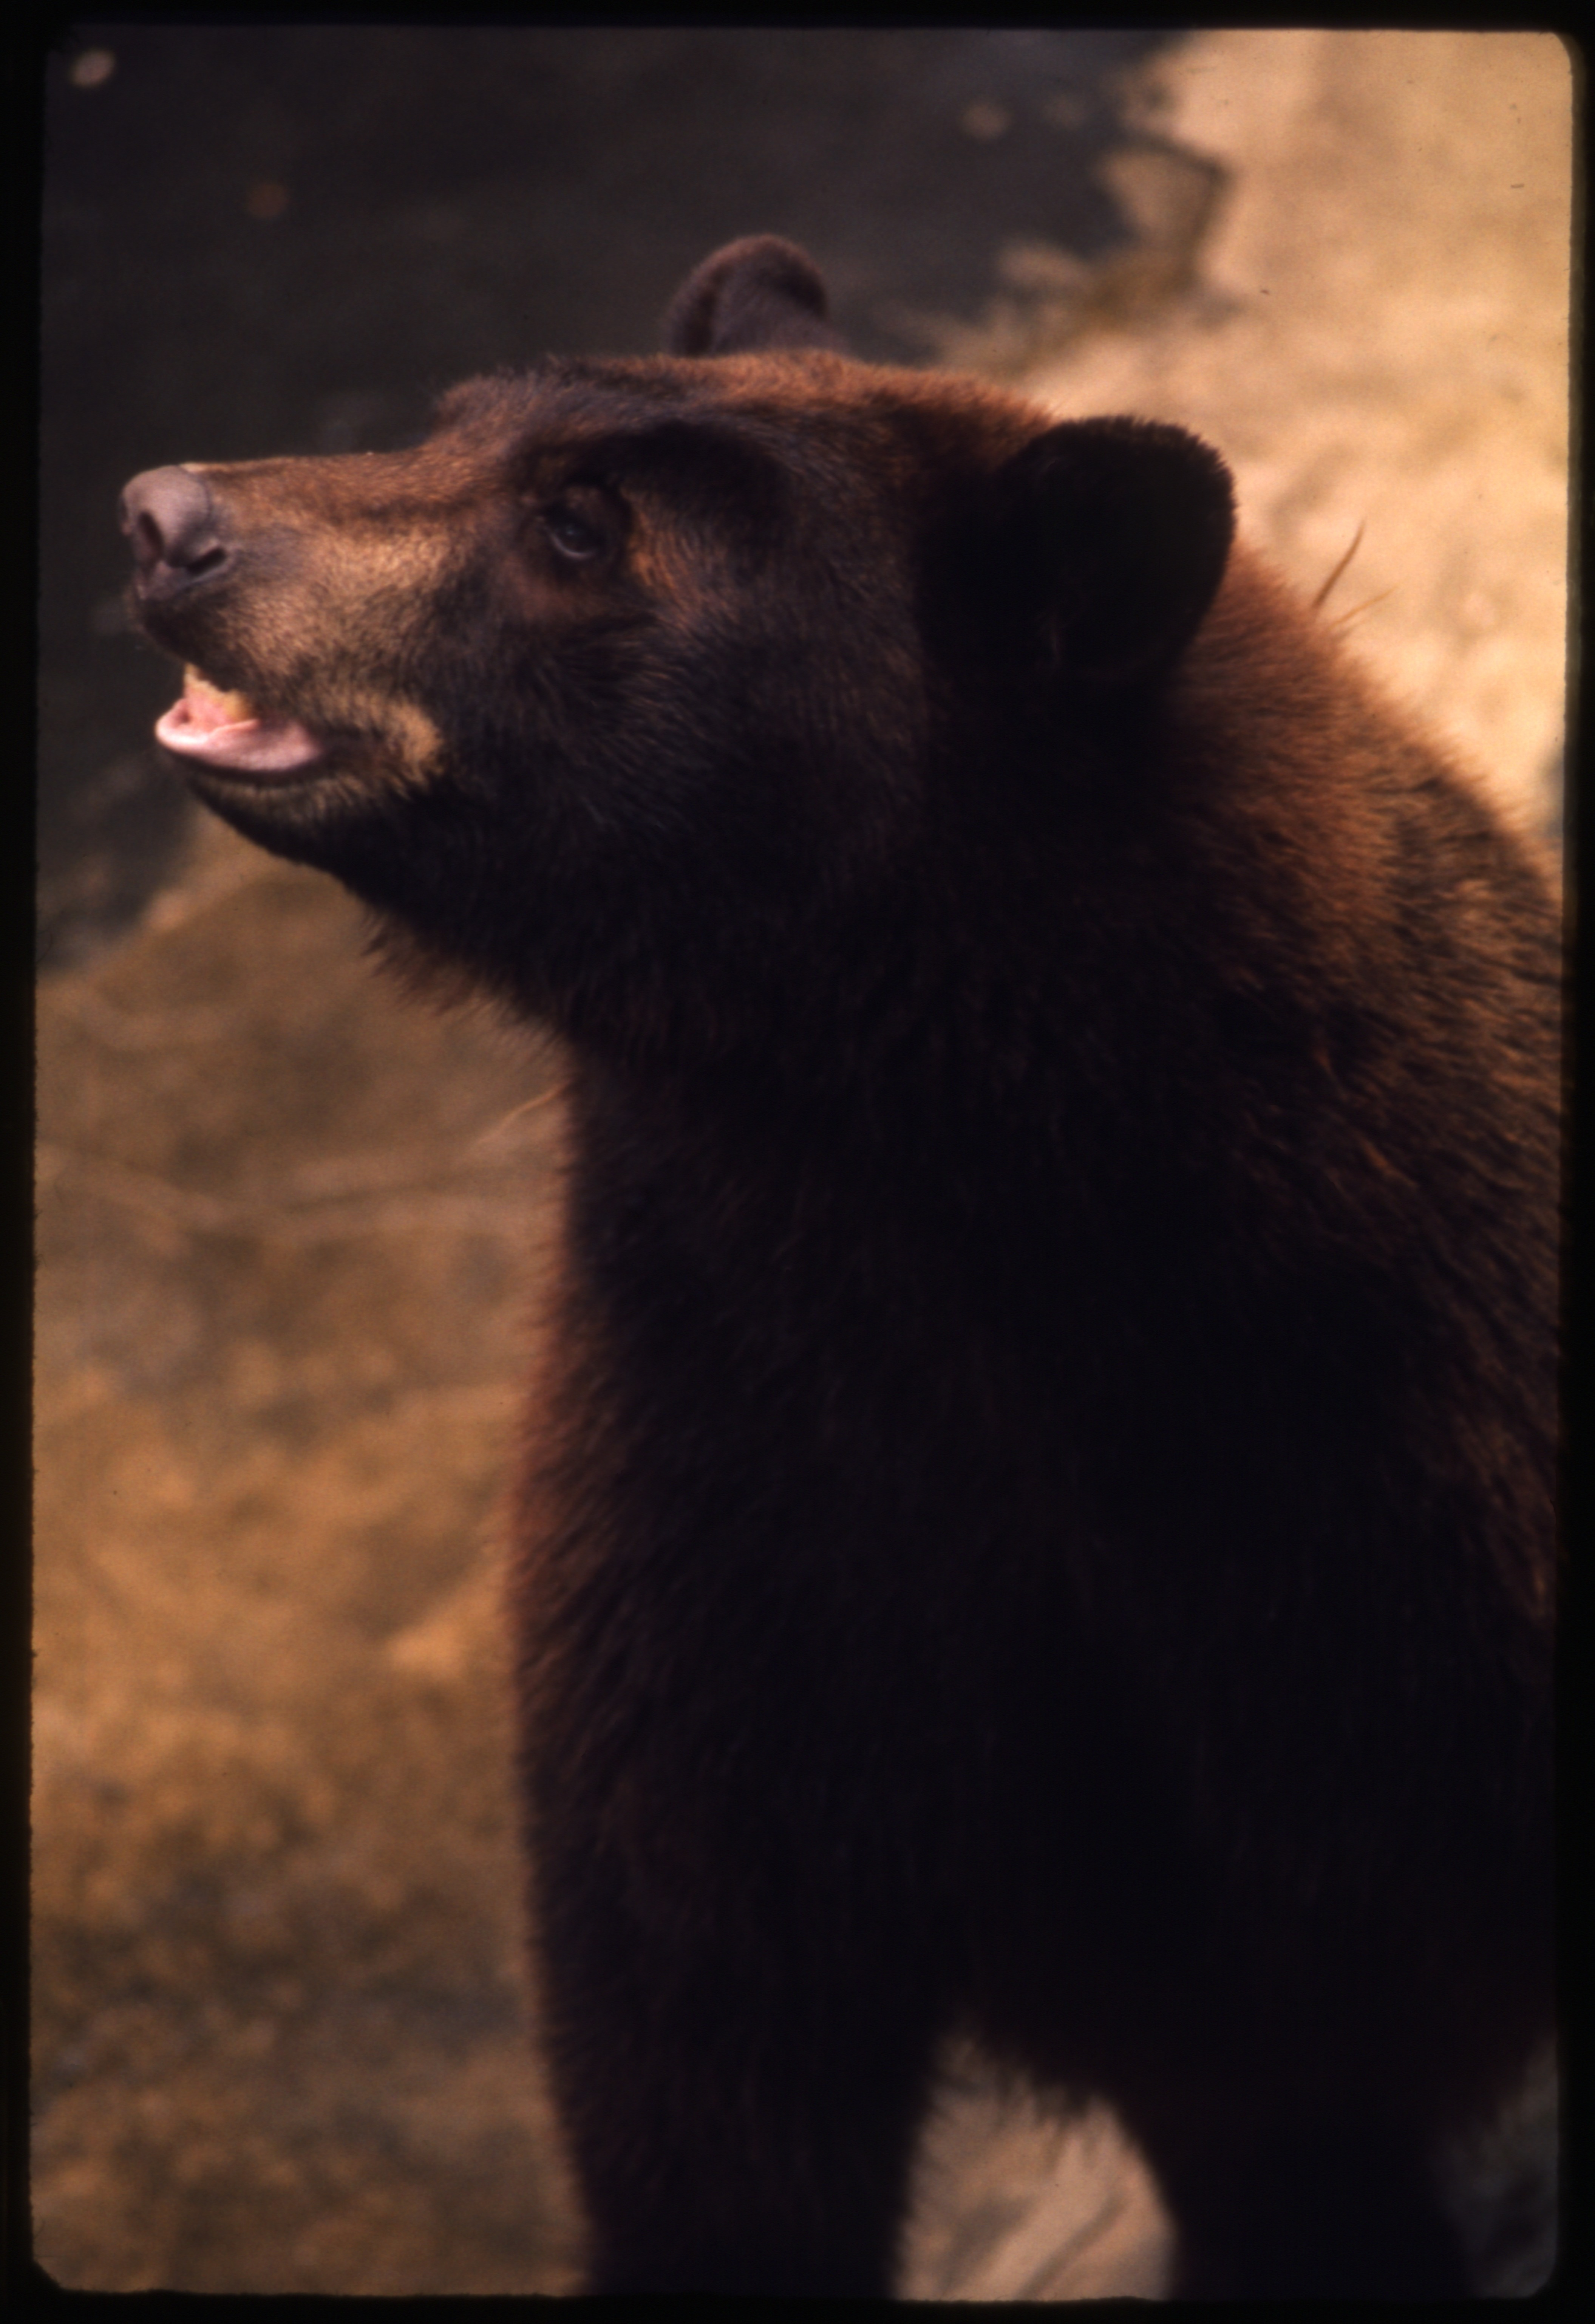 Close up image of a small bear.